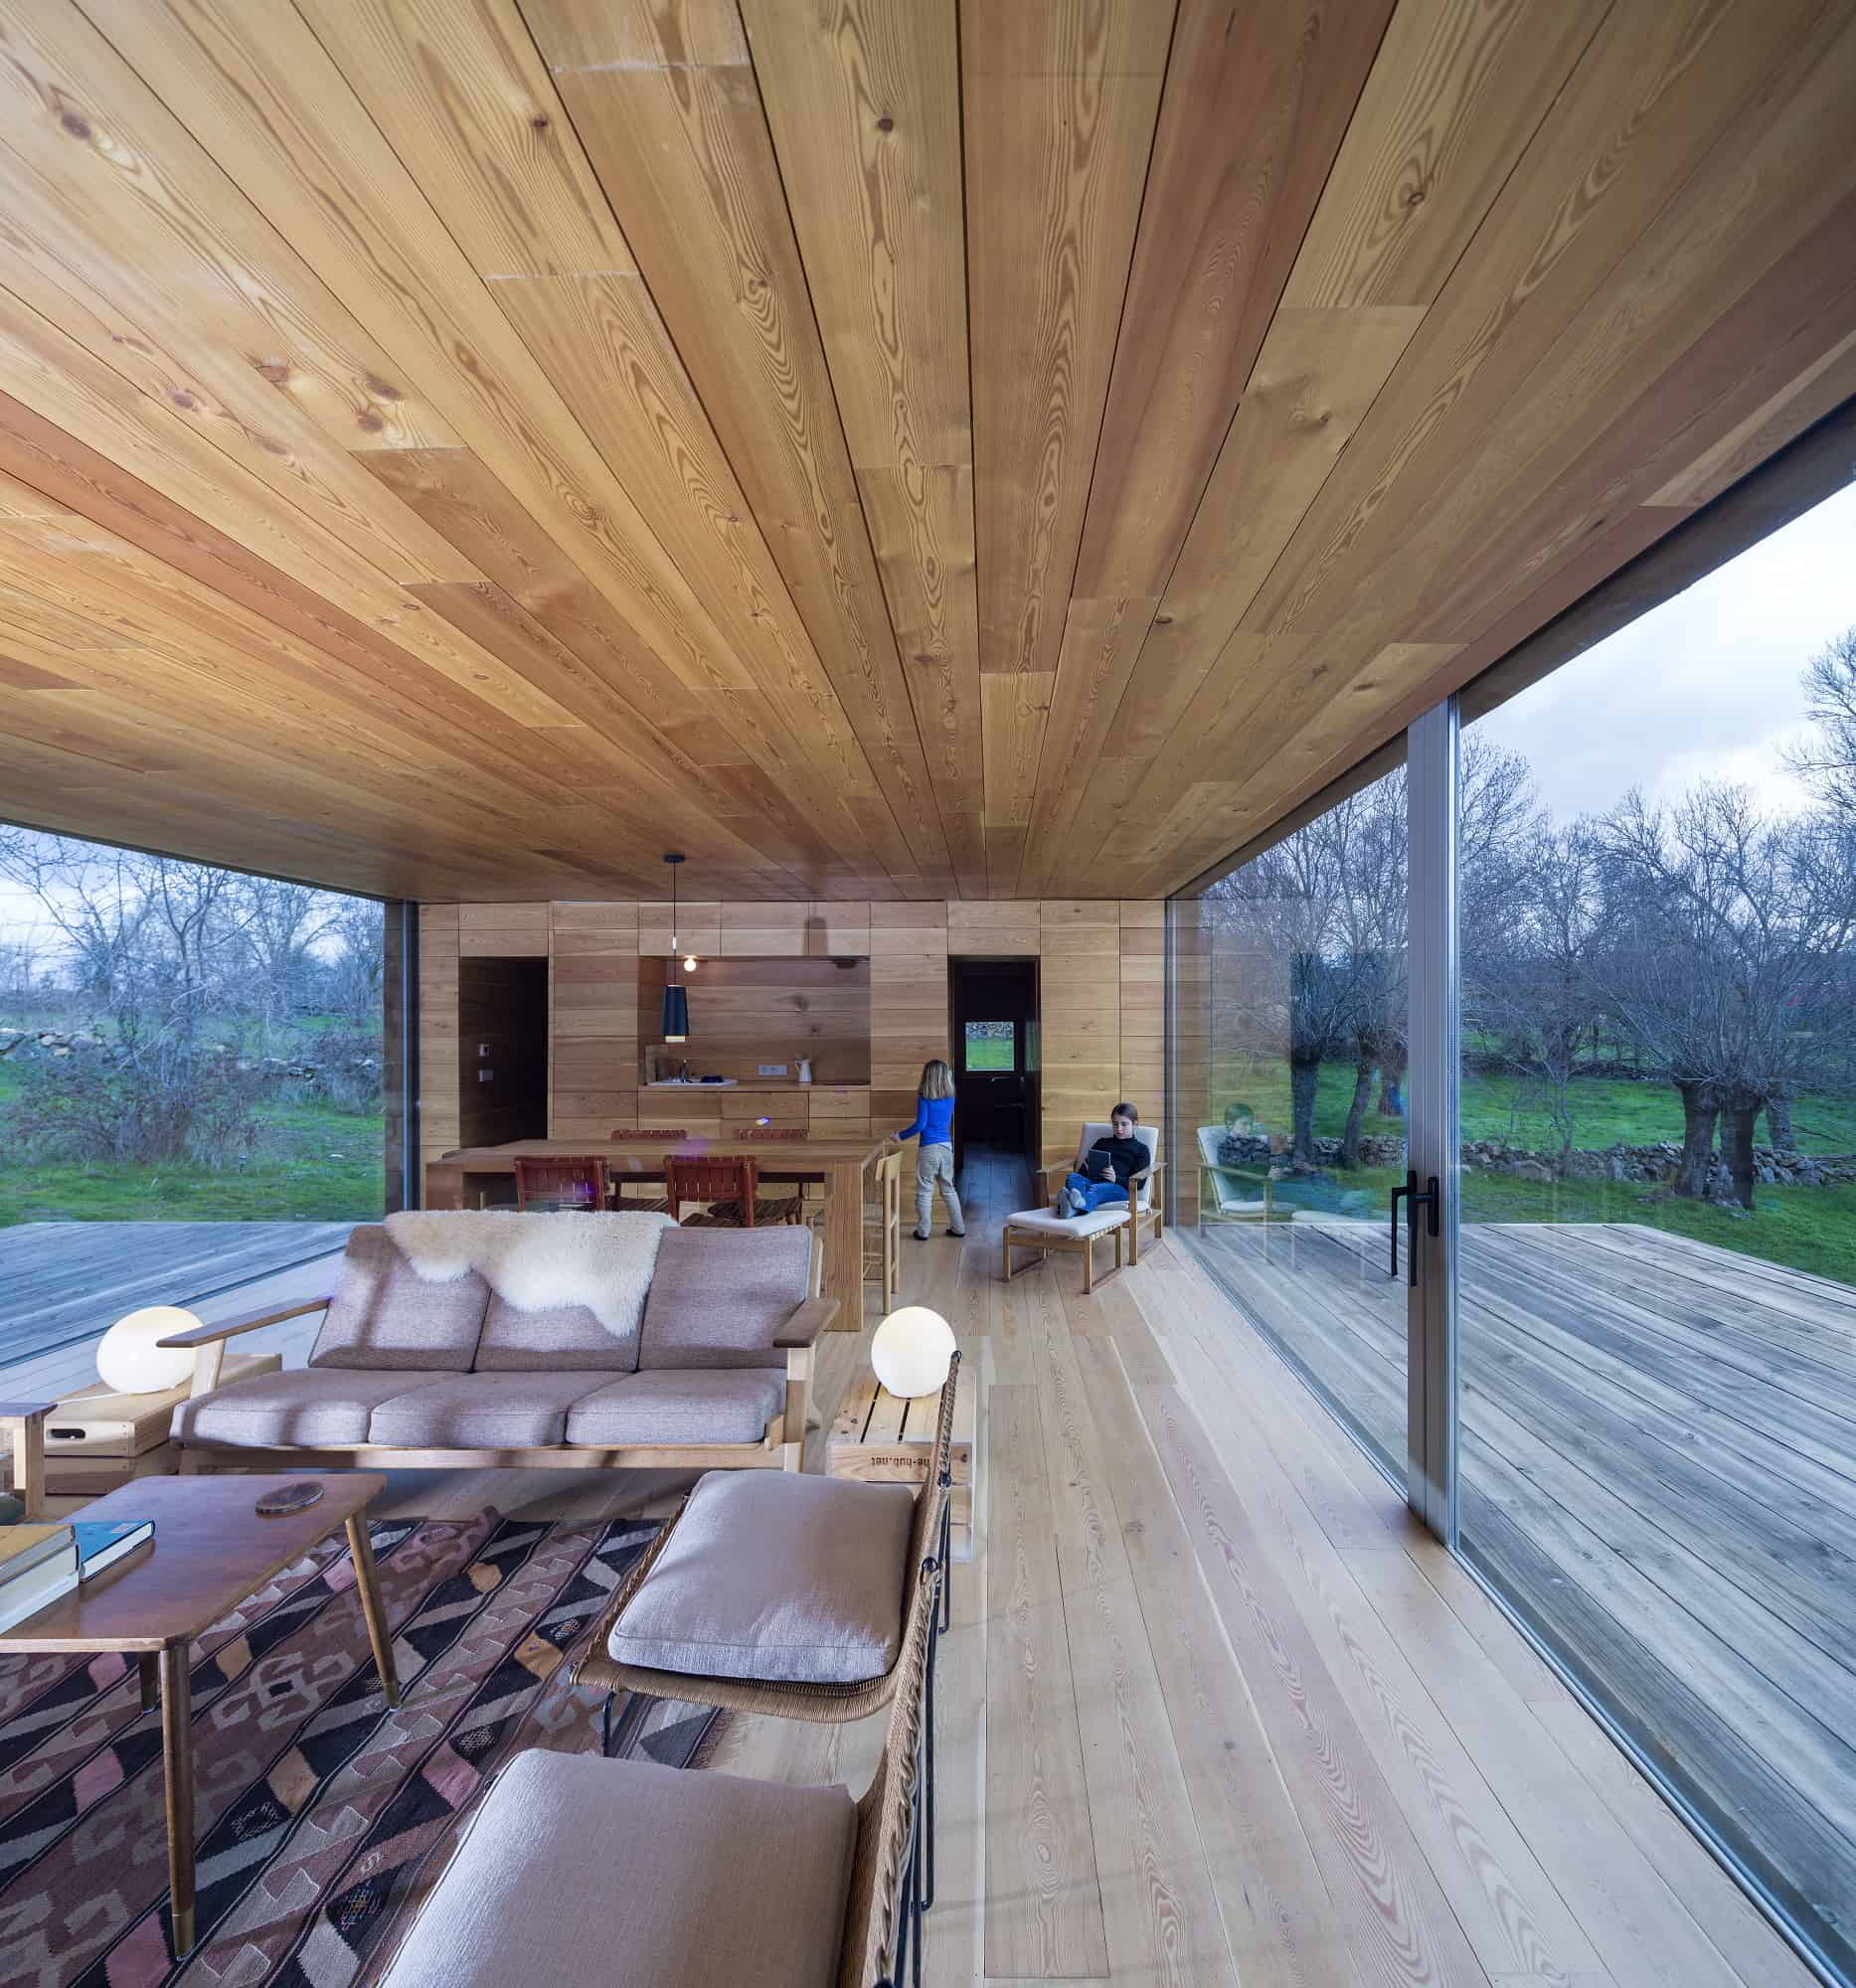 Lame De Terrasse Piscine Open Cabin Design With Cozy Wood Interiors